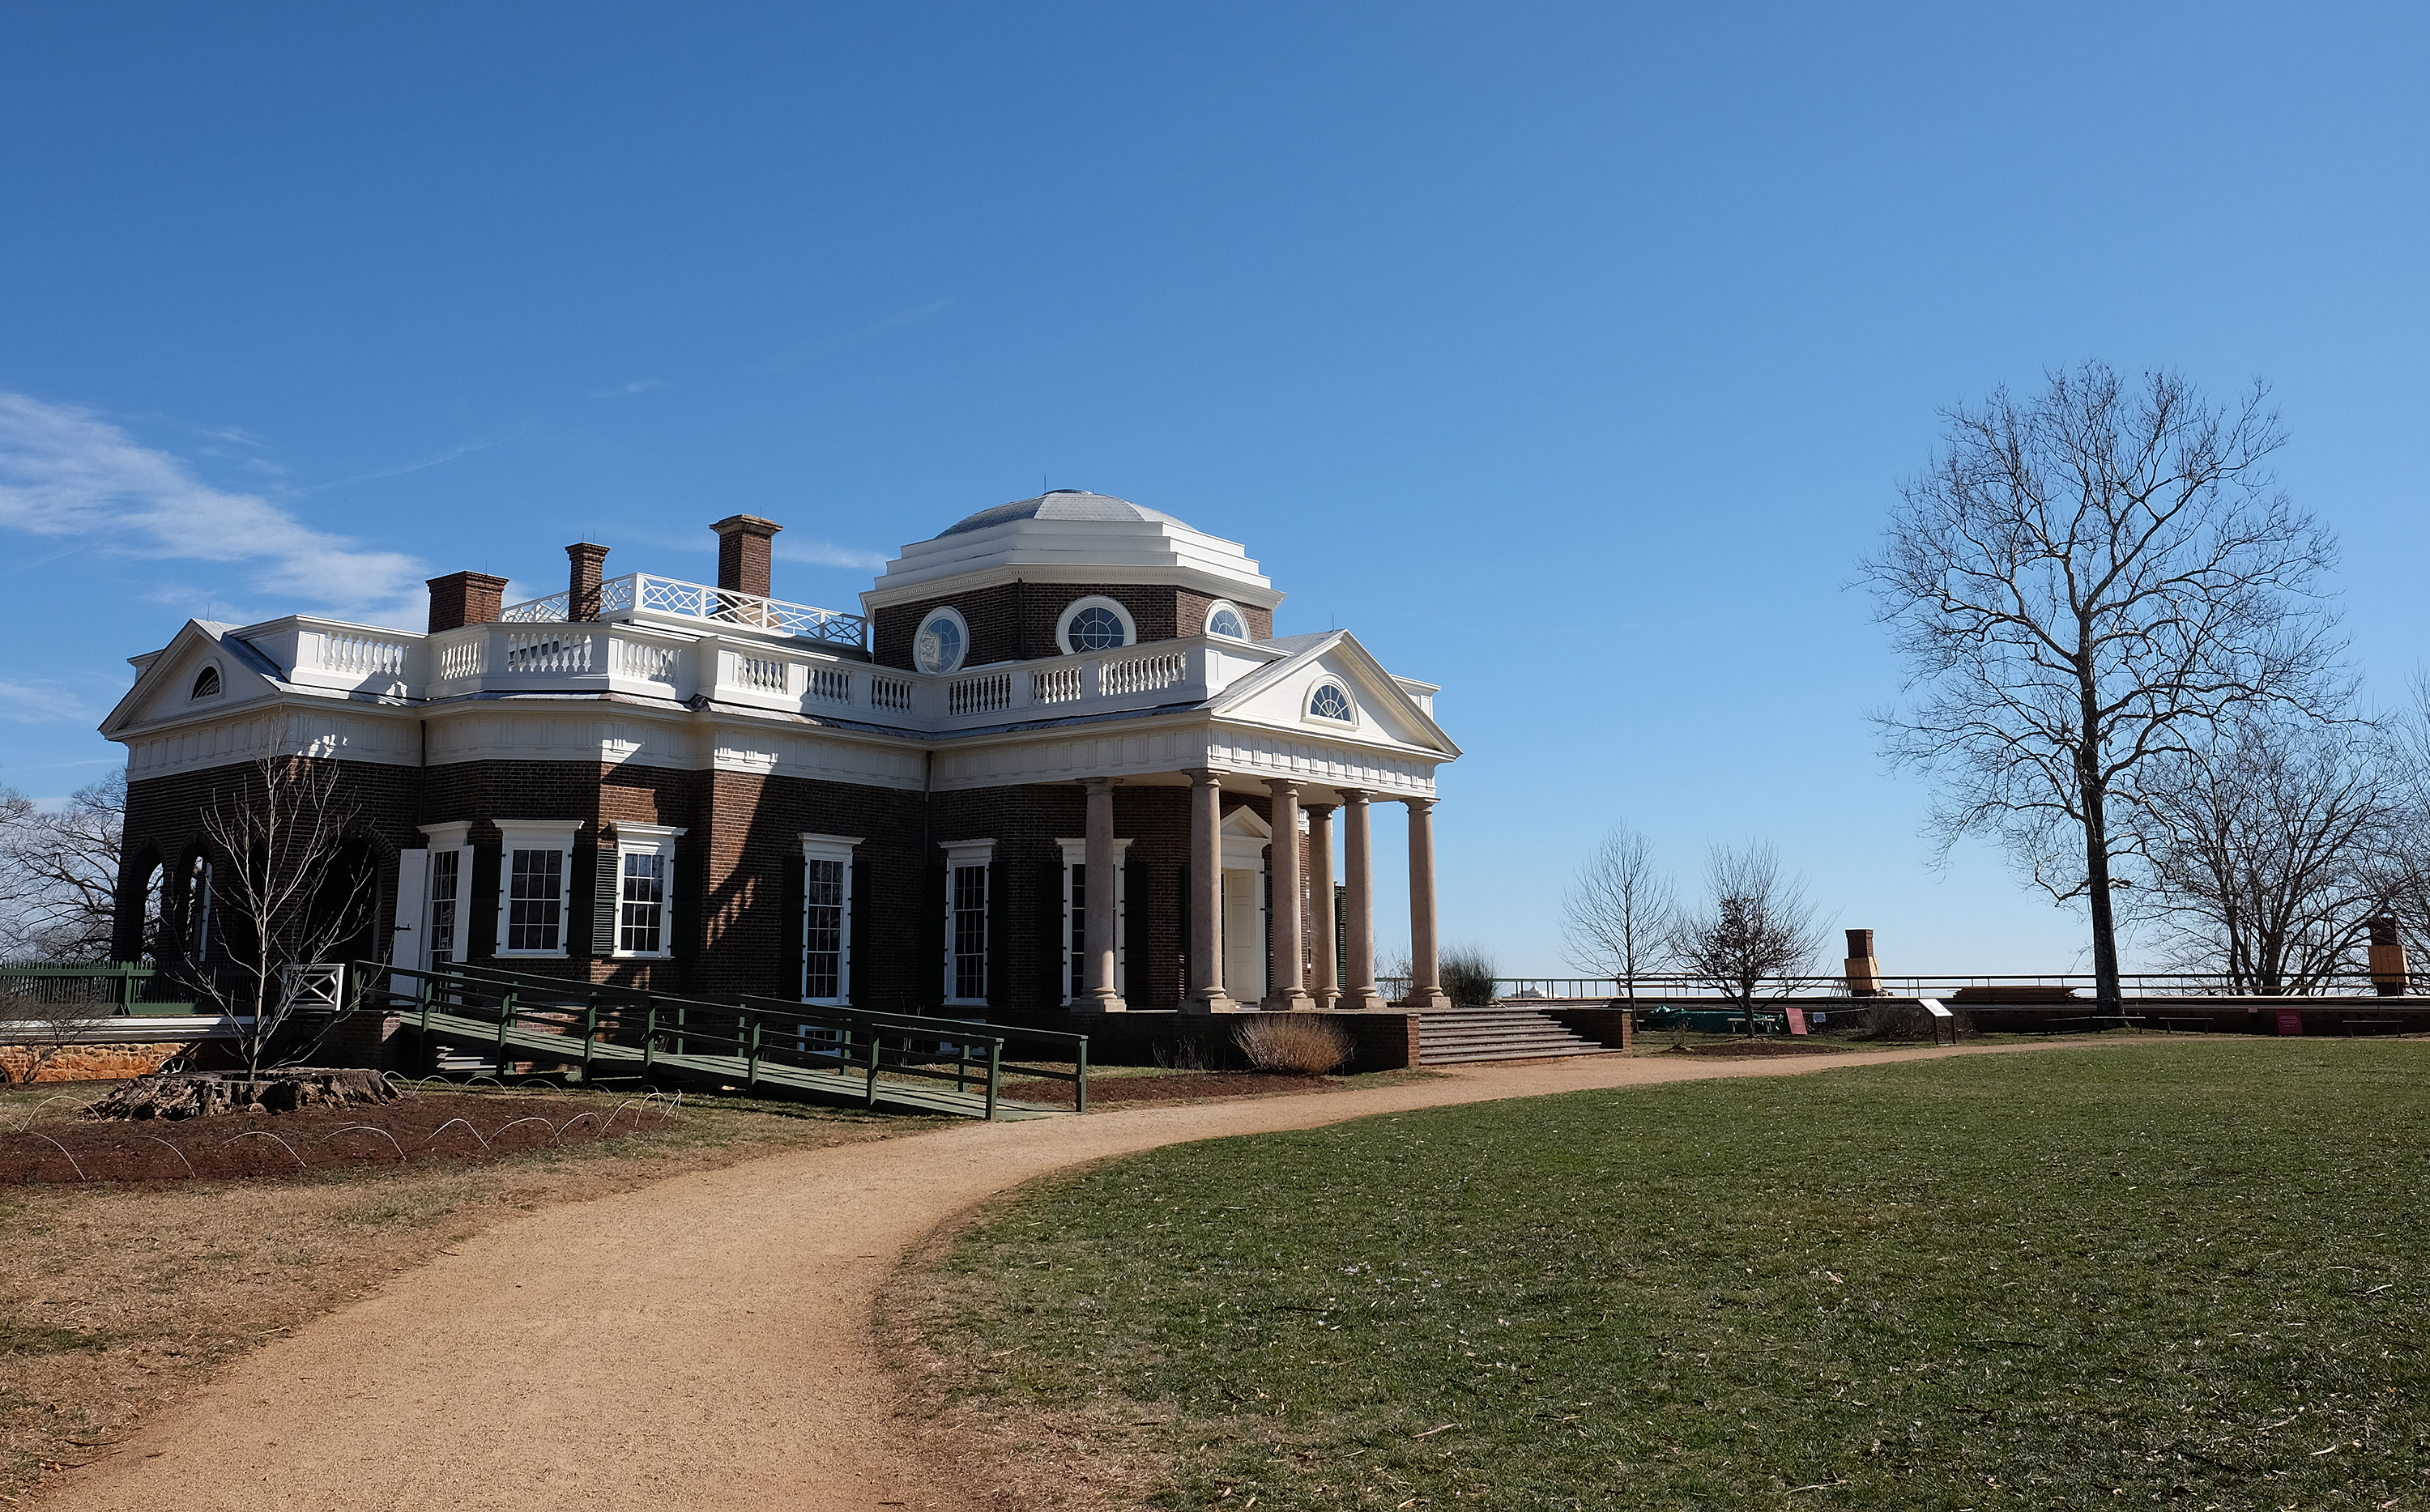 Monticello, home of Thomas Jefferson, in Charlottesville, Va.